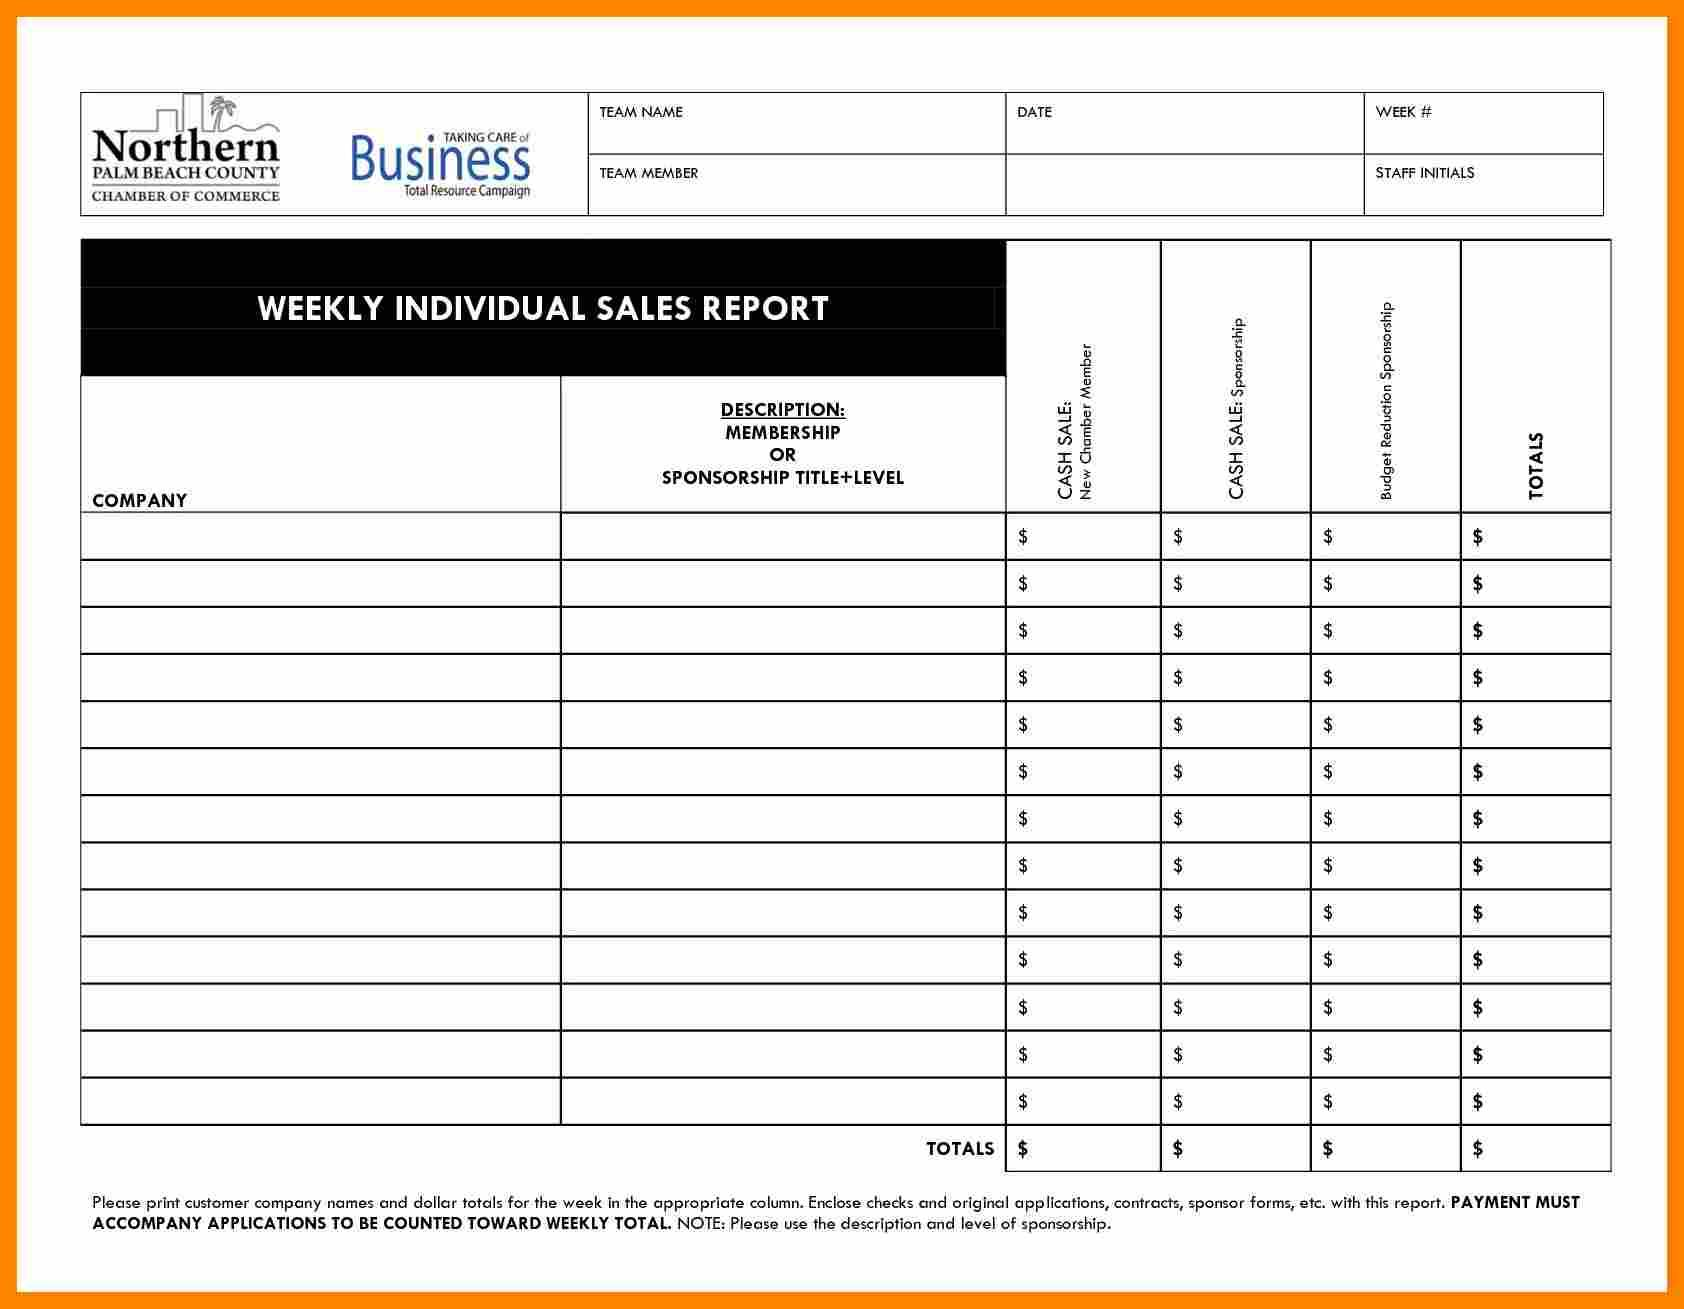 Microsoft Excel Daily Sales Report Template